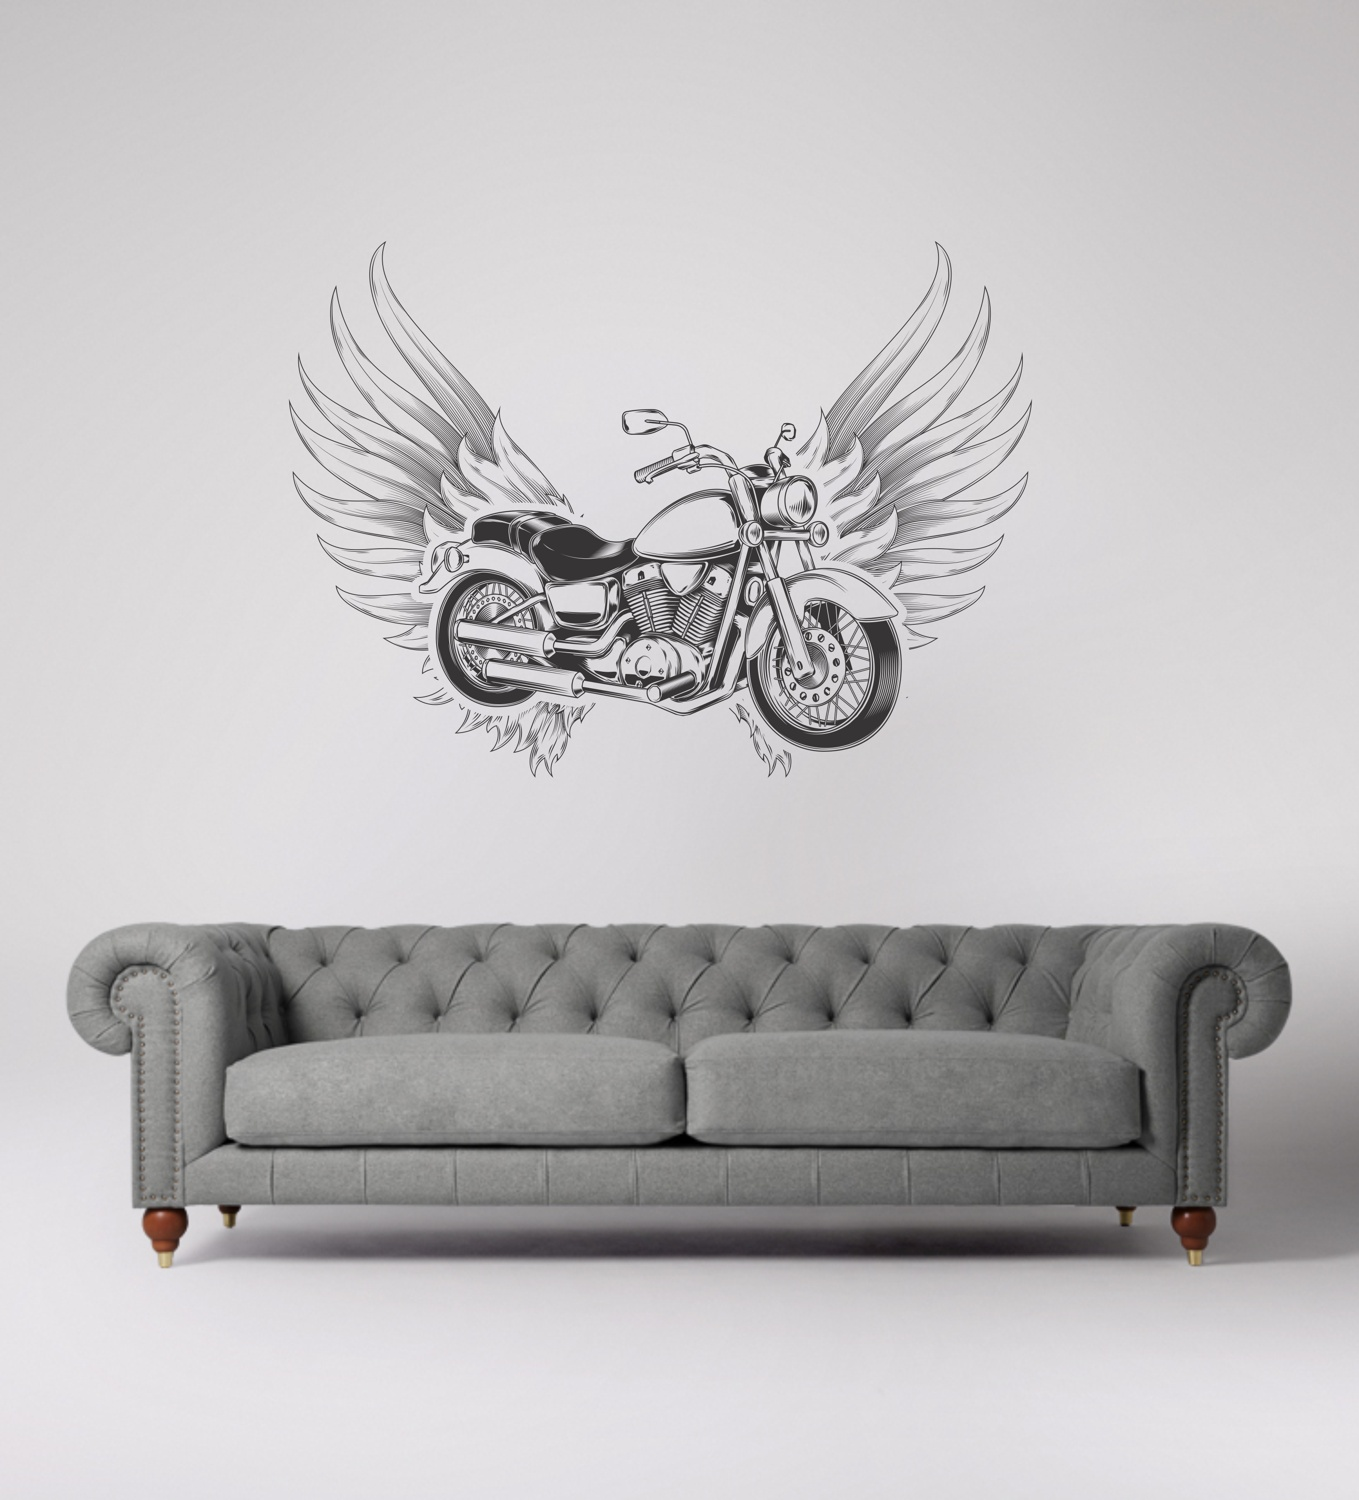 Laser Cut Engrave Flying Motorcycle Wall Art Free CDR Vectors Art